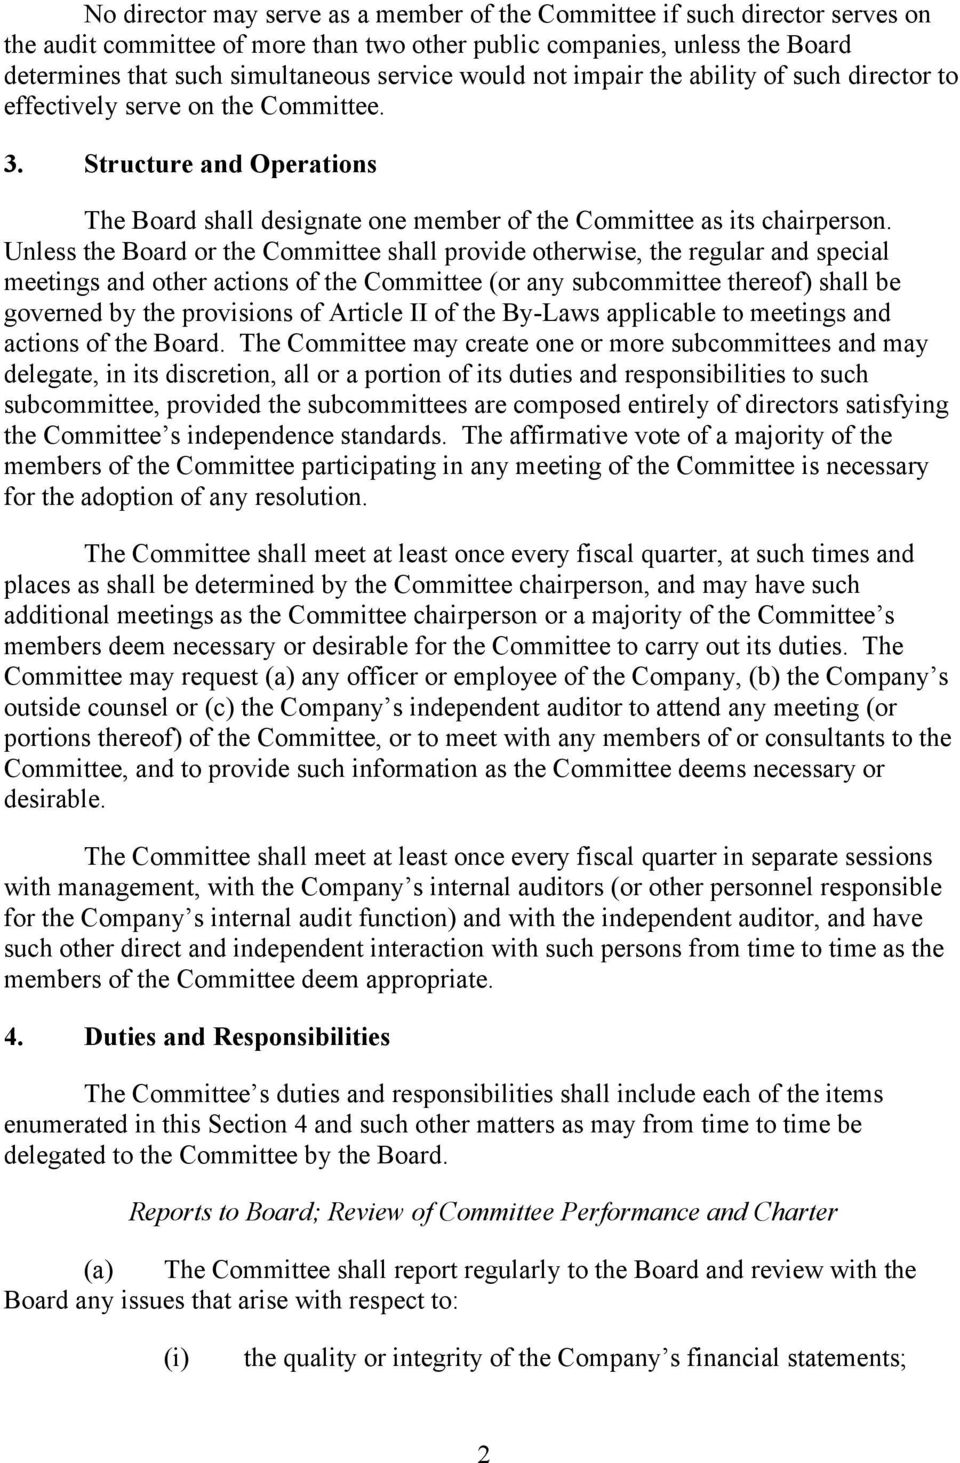 Unless the Board or the Committee shall provide otherwise, the regular and special meetings and other actions of the Committee (or any subcommittee thereof) shall be governed by the provisions of